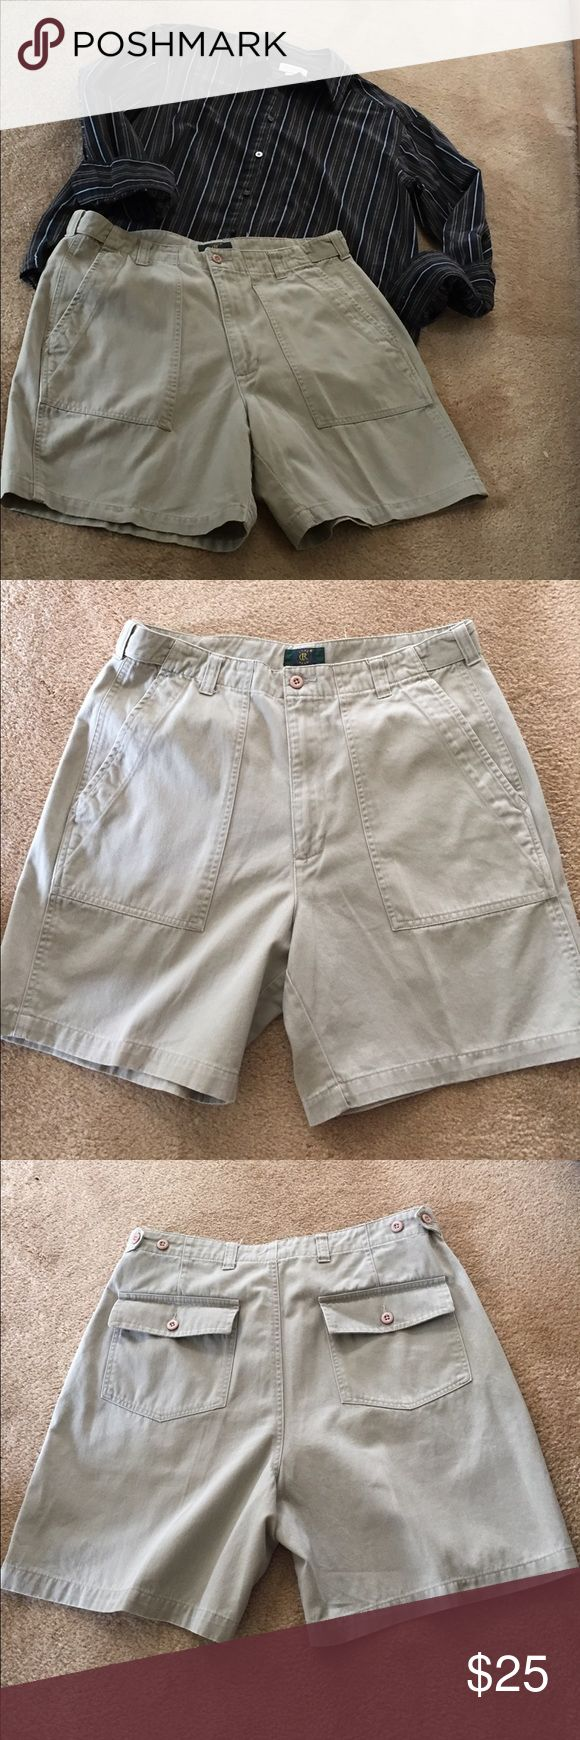 Men's Dresses Shorts Great khaki dress shorts for a casual date. Size 33 Club Room Shorts Flat Front